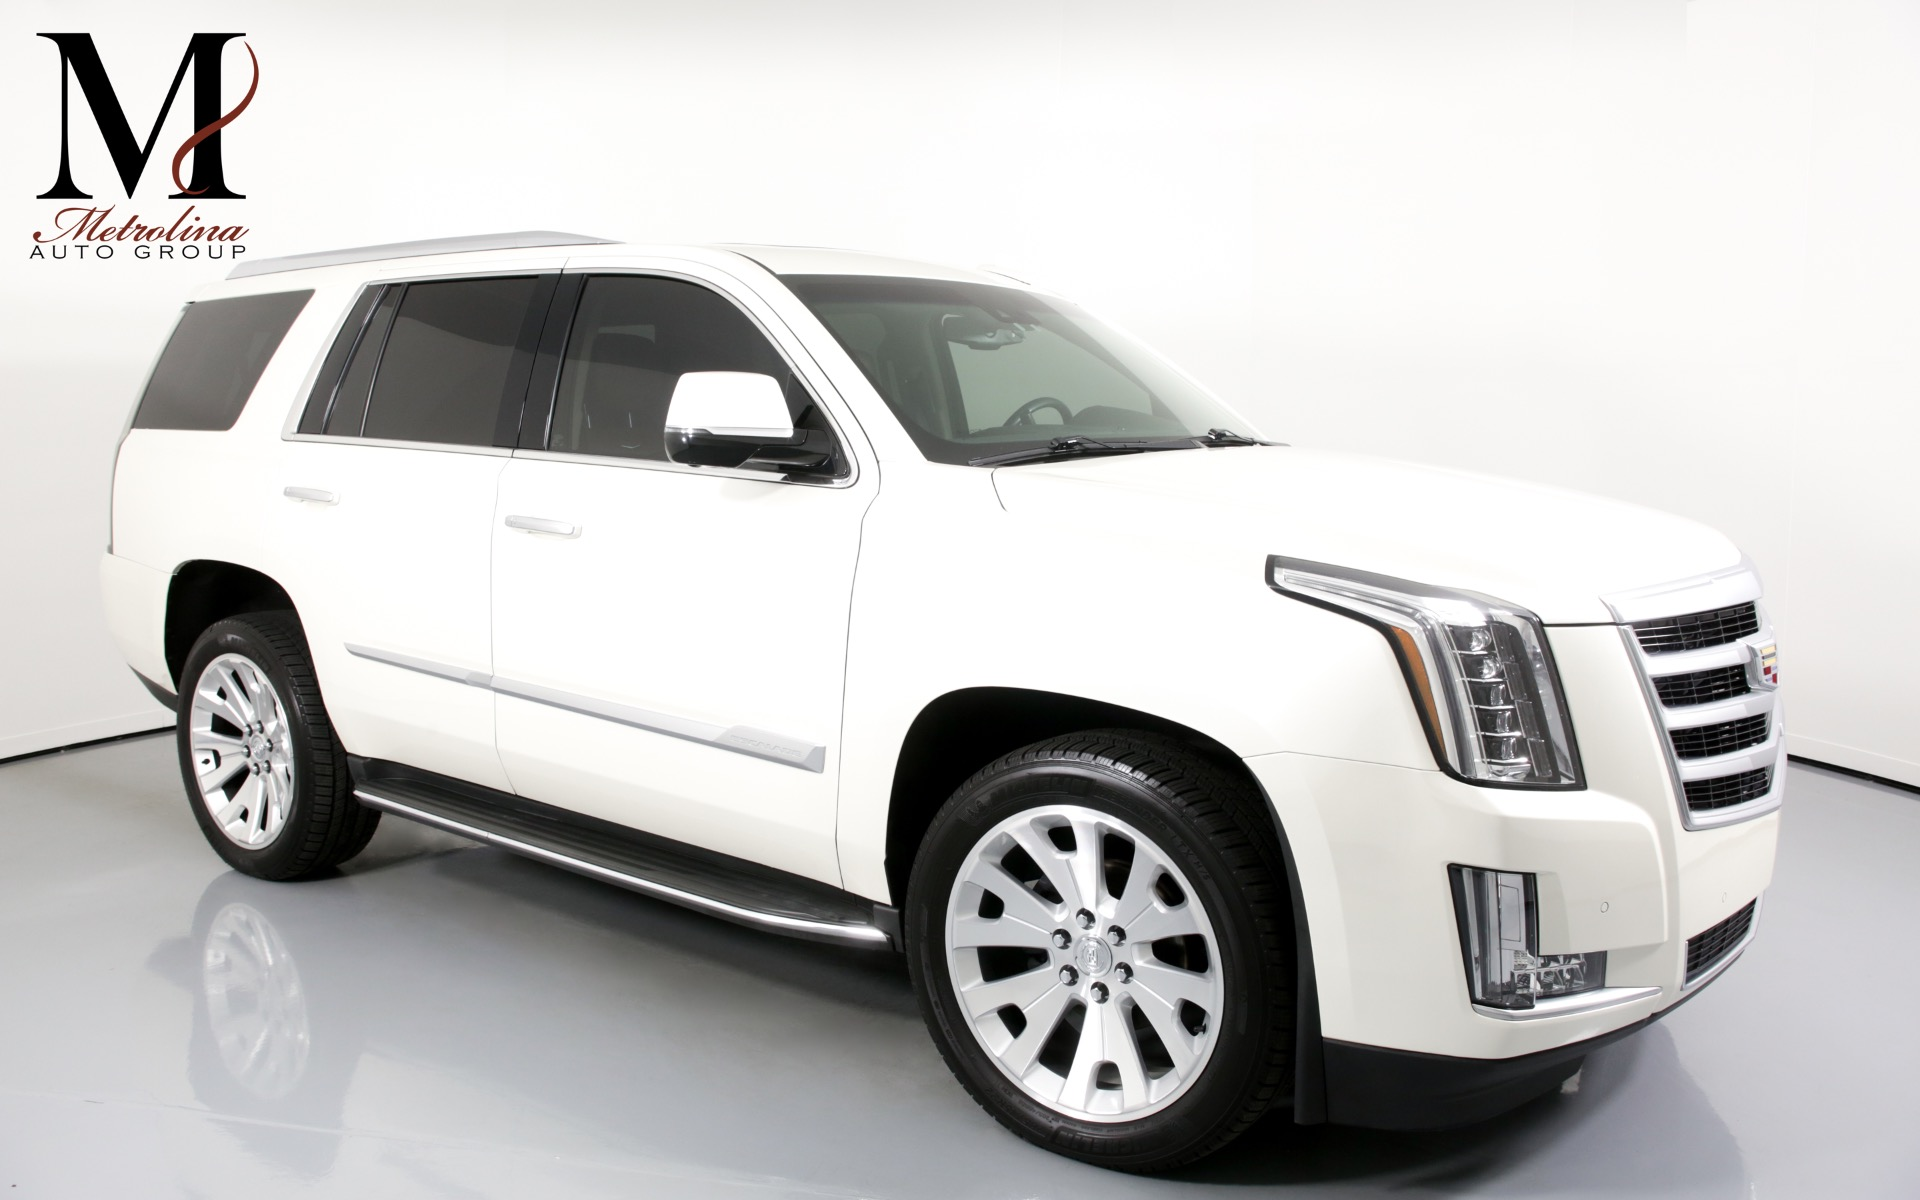 Used 2015 Cadillac Escalade Luxury for sale $49,996 at Metrolina Auto Group in Charlotte NC 28217 - 1